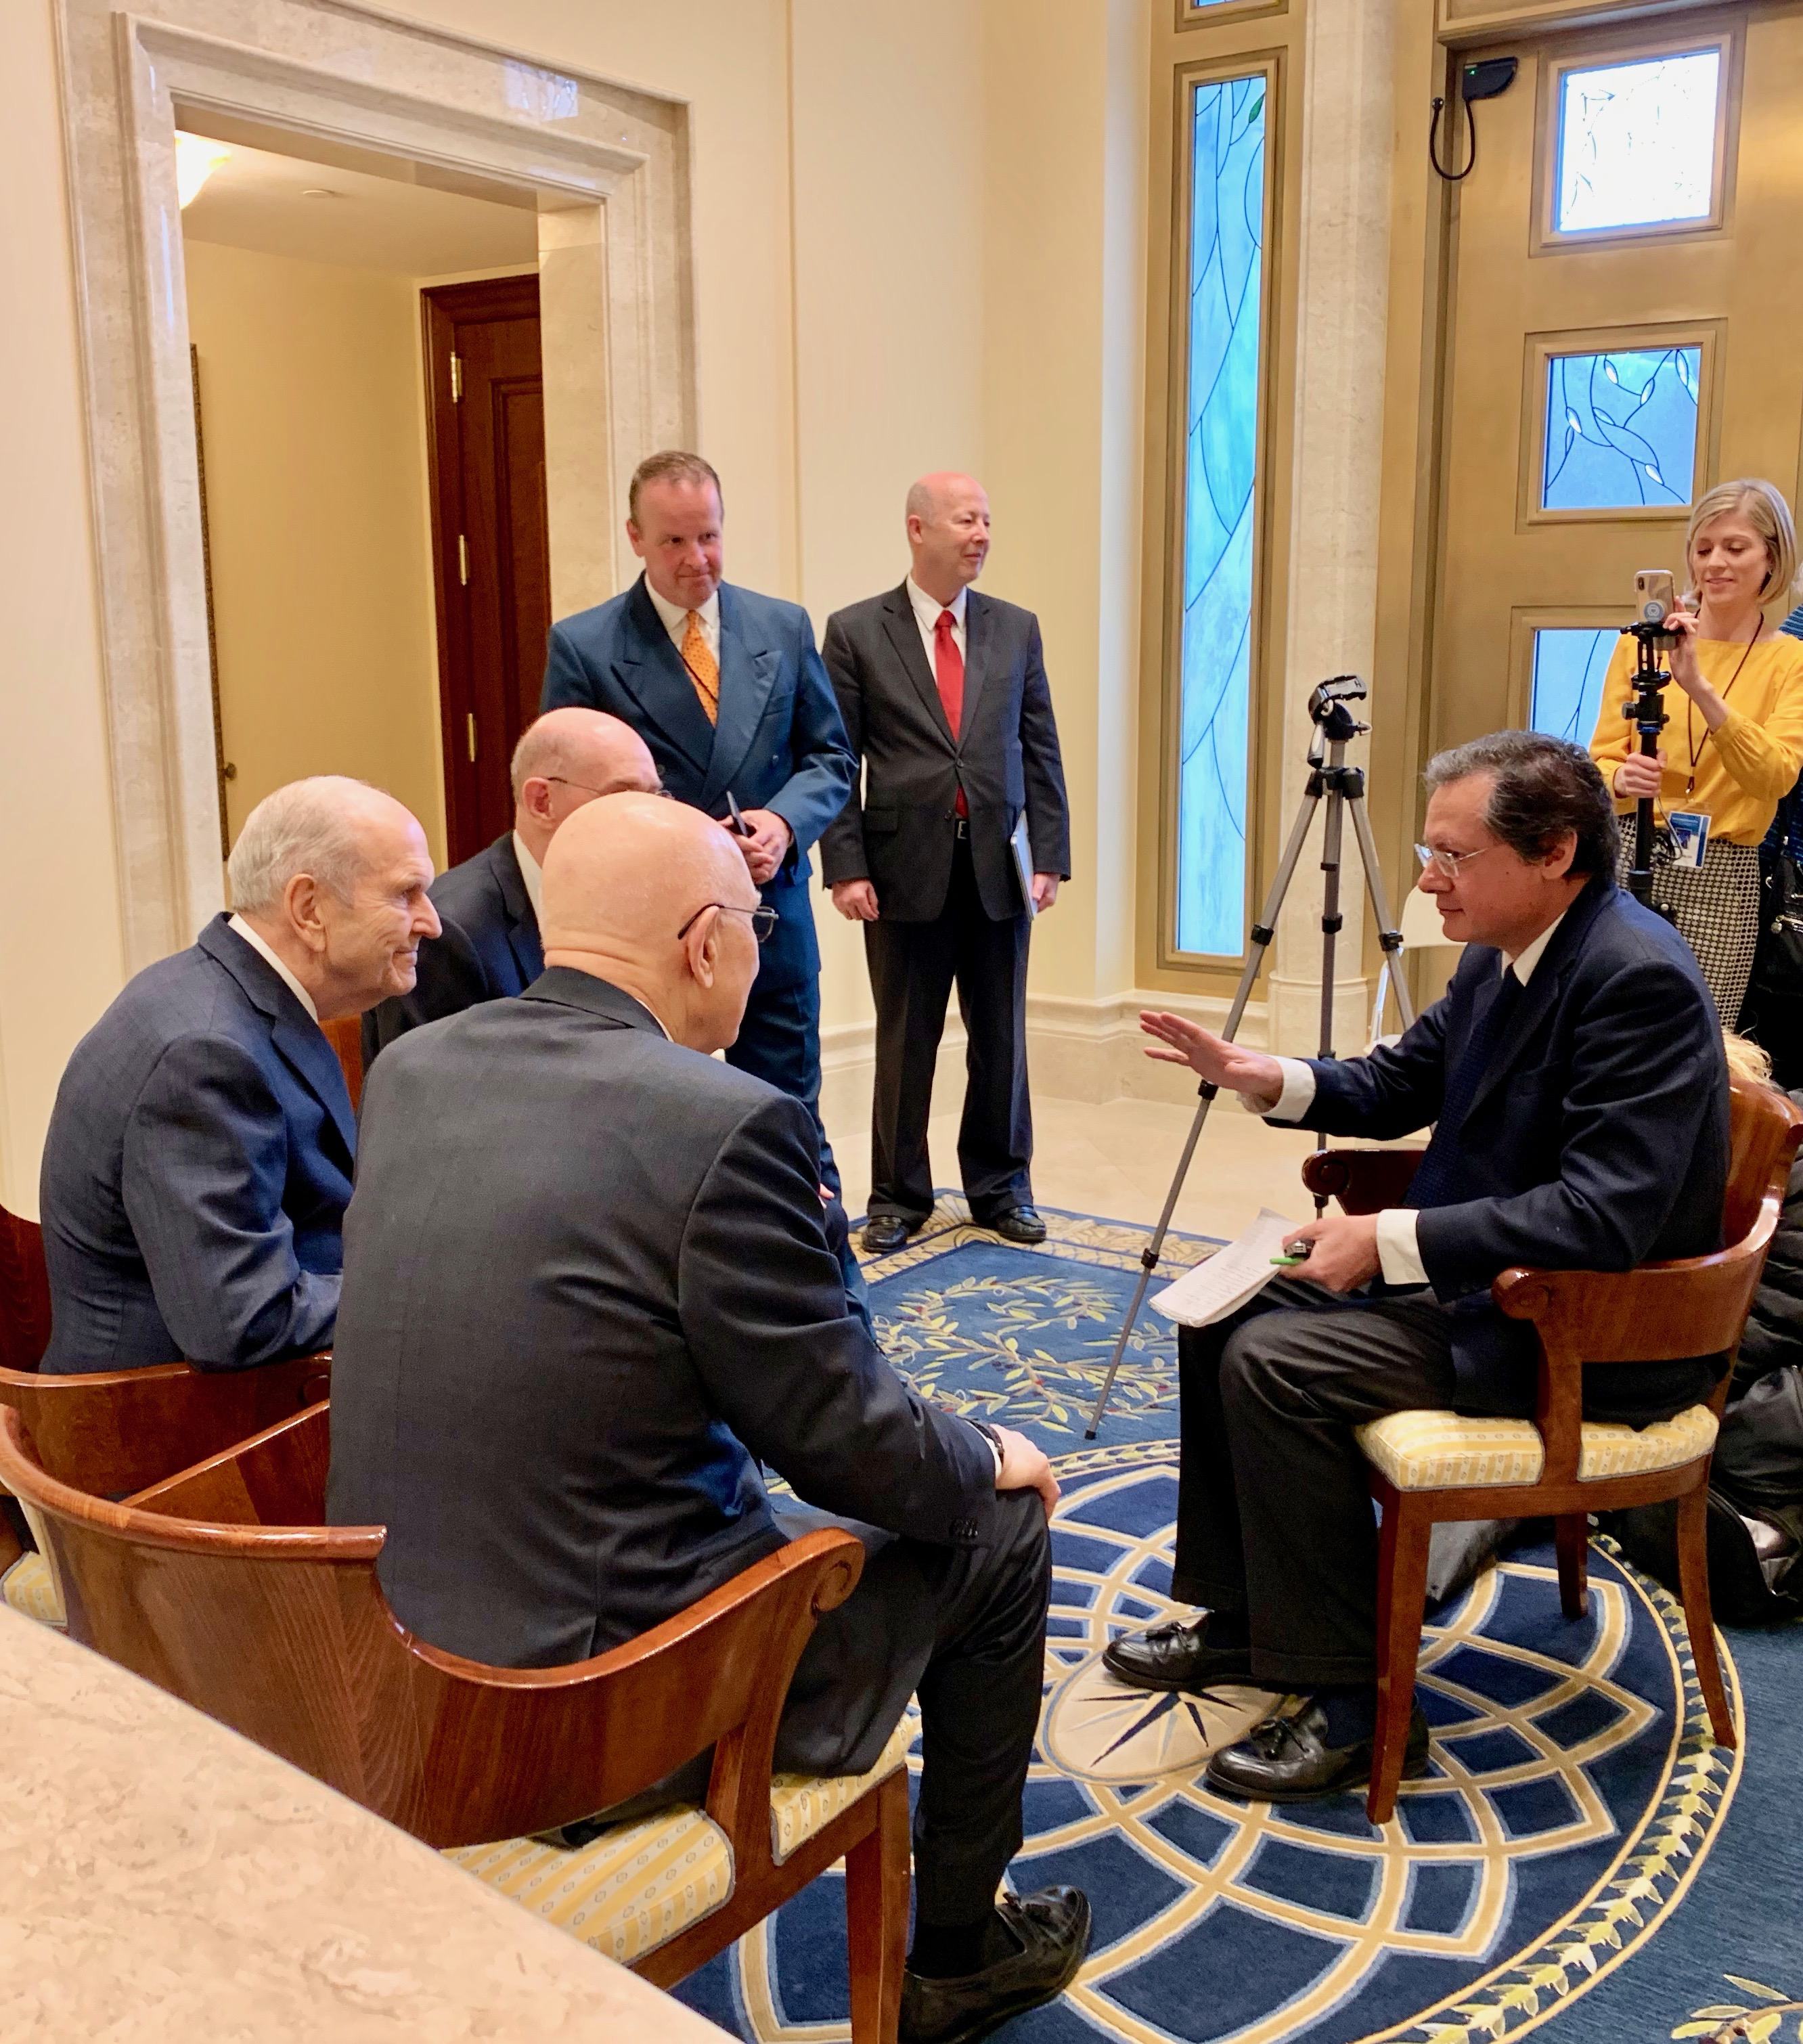 La Stampa correspondent Paolo Mastrolilli gestures as he interviews President Russell M. Nelson, far left, and his counselors in the First Presidency of The Church of Jesus Christ of Latter-day Saints in the Rome Italy Temple on Monday, March 11, 2019.